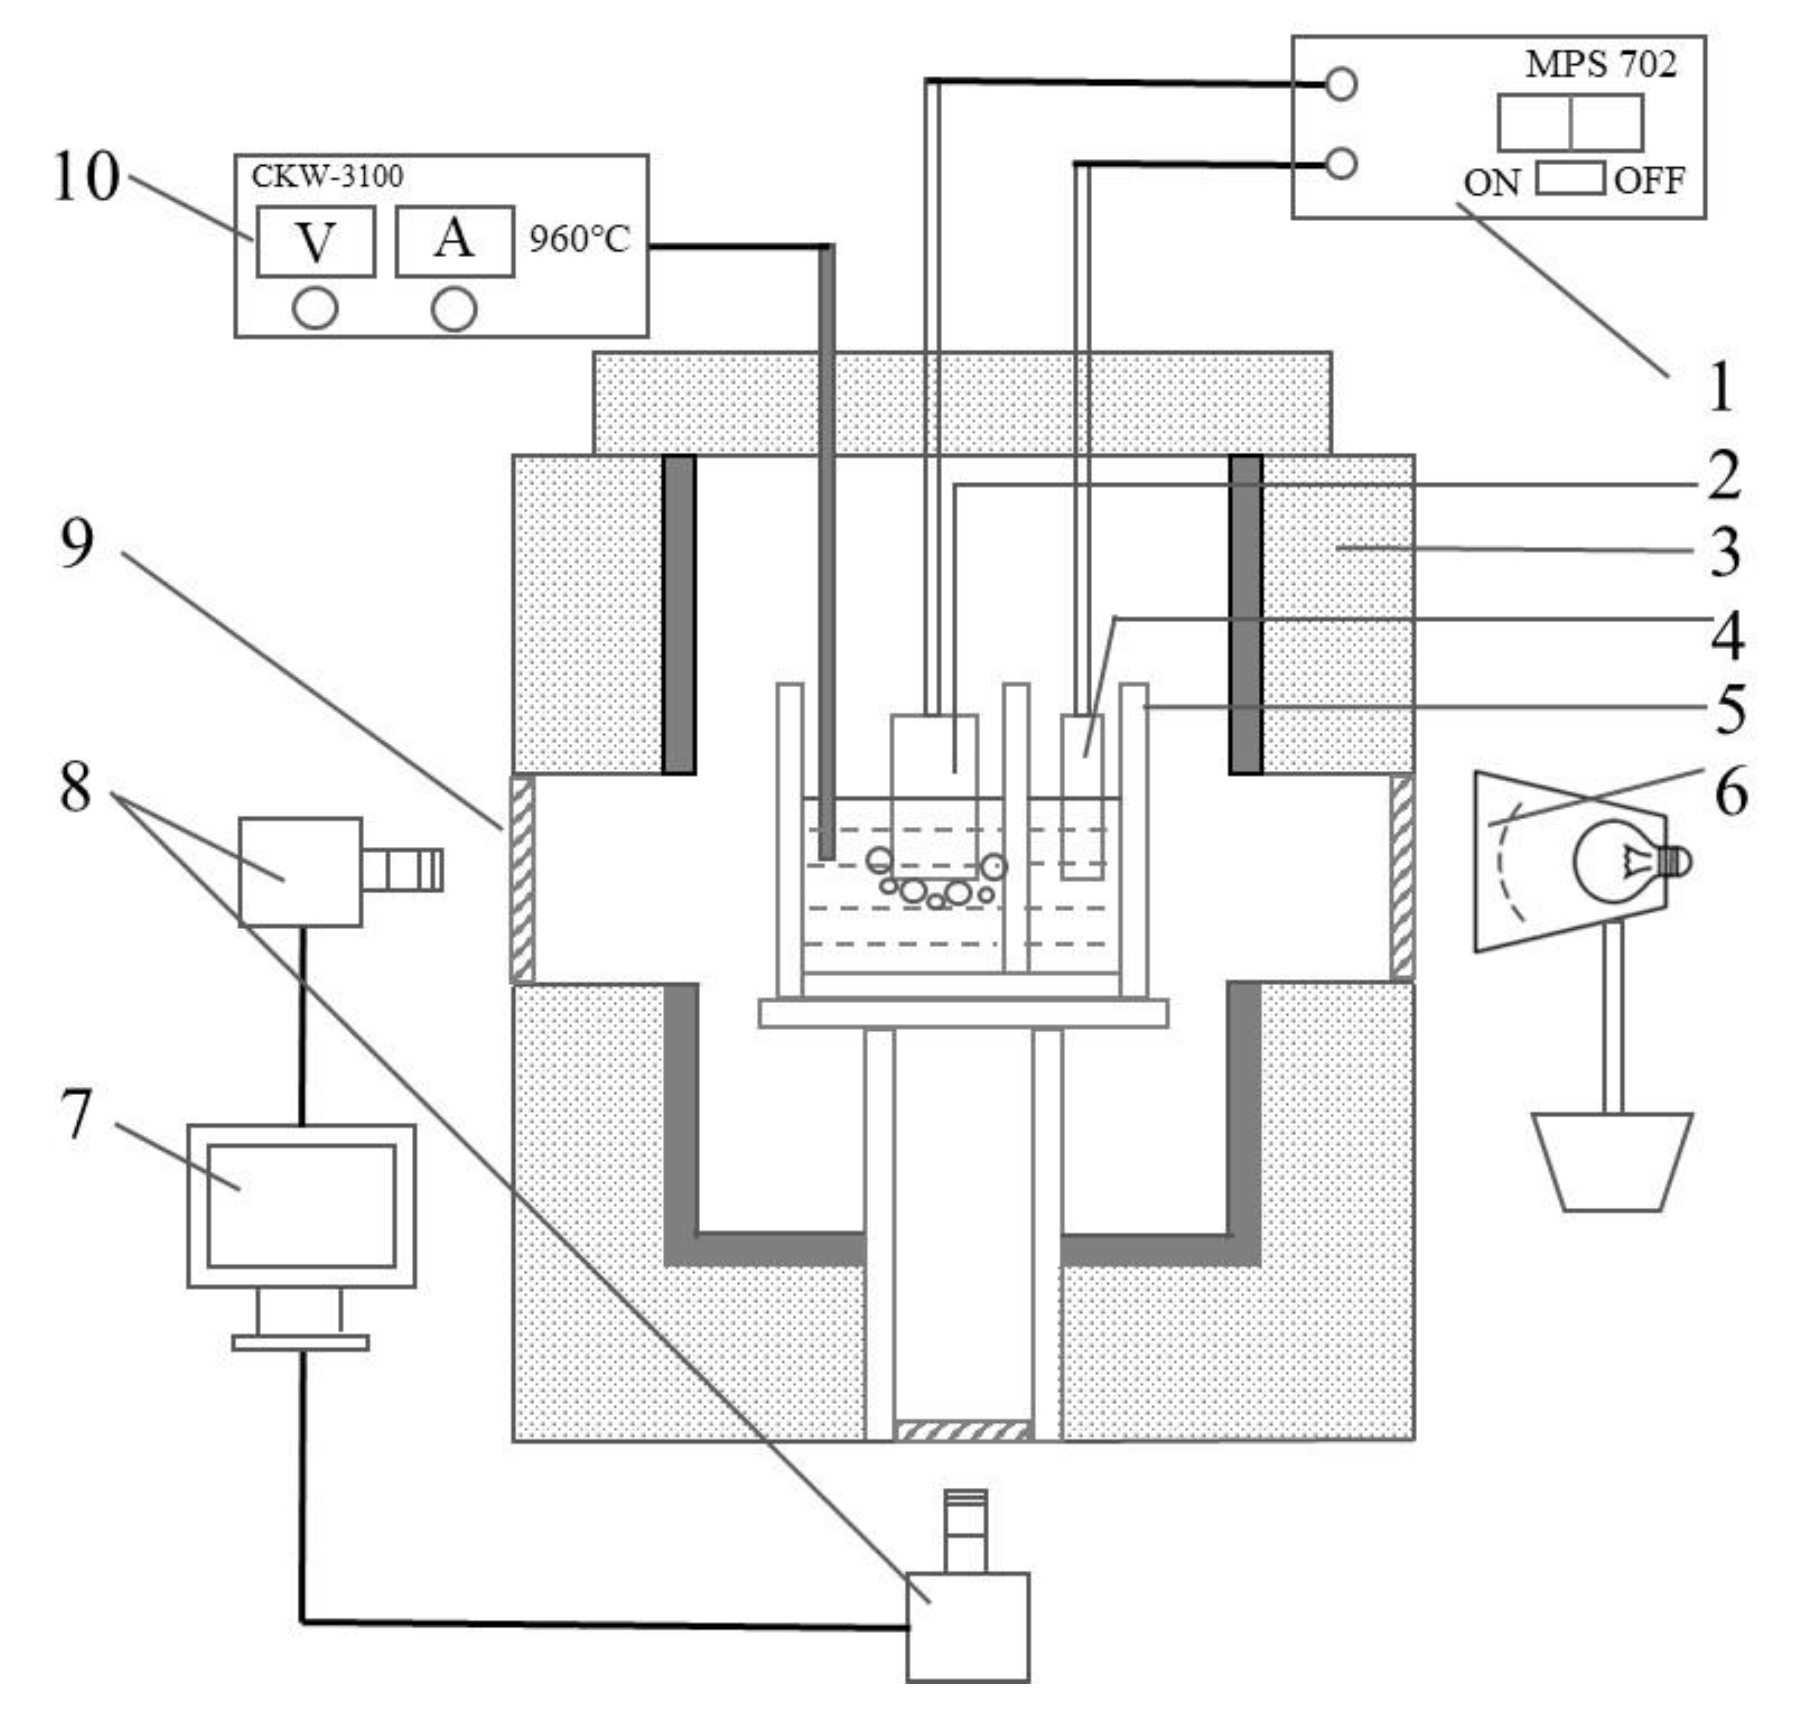 Aluminum Furnace Schematic Schematics Diagram Metals Free Full Text Anodic Bubble Behavior In A Laboratory Wiring Older